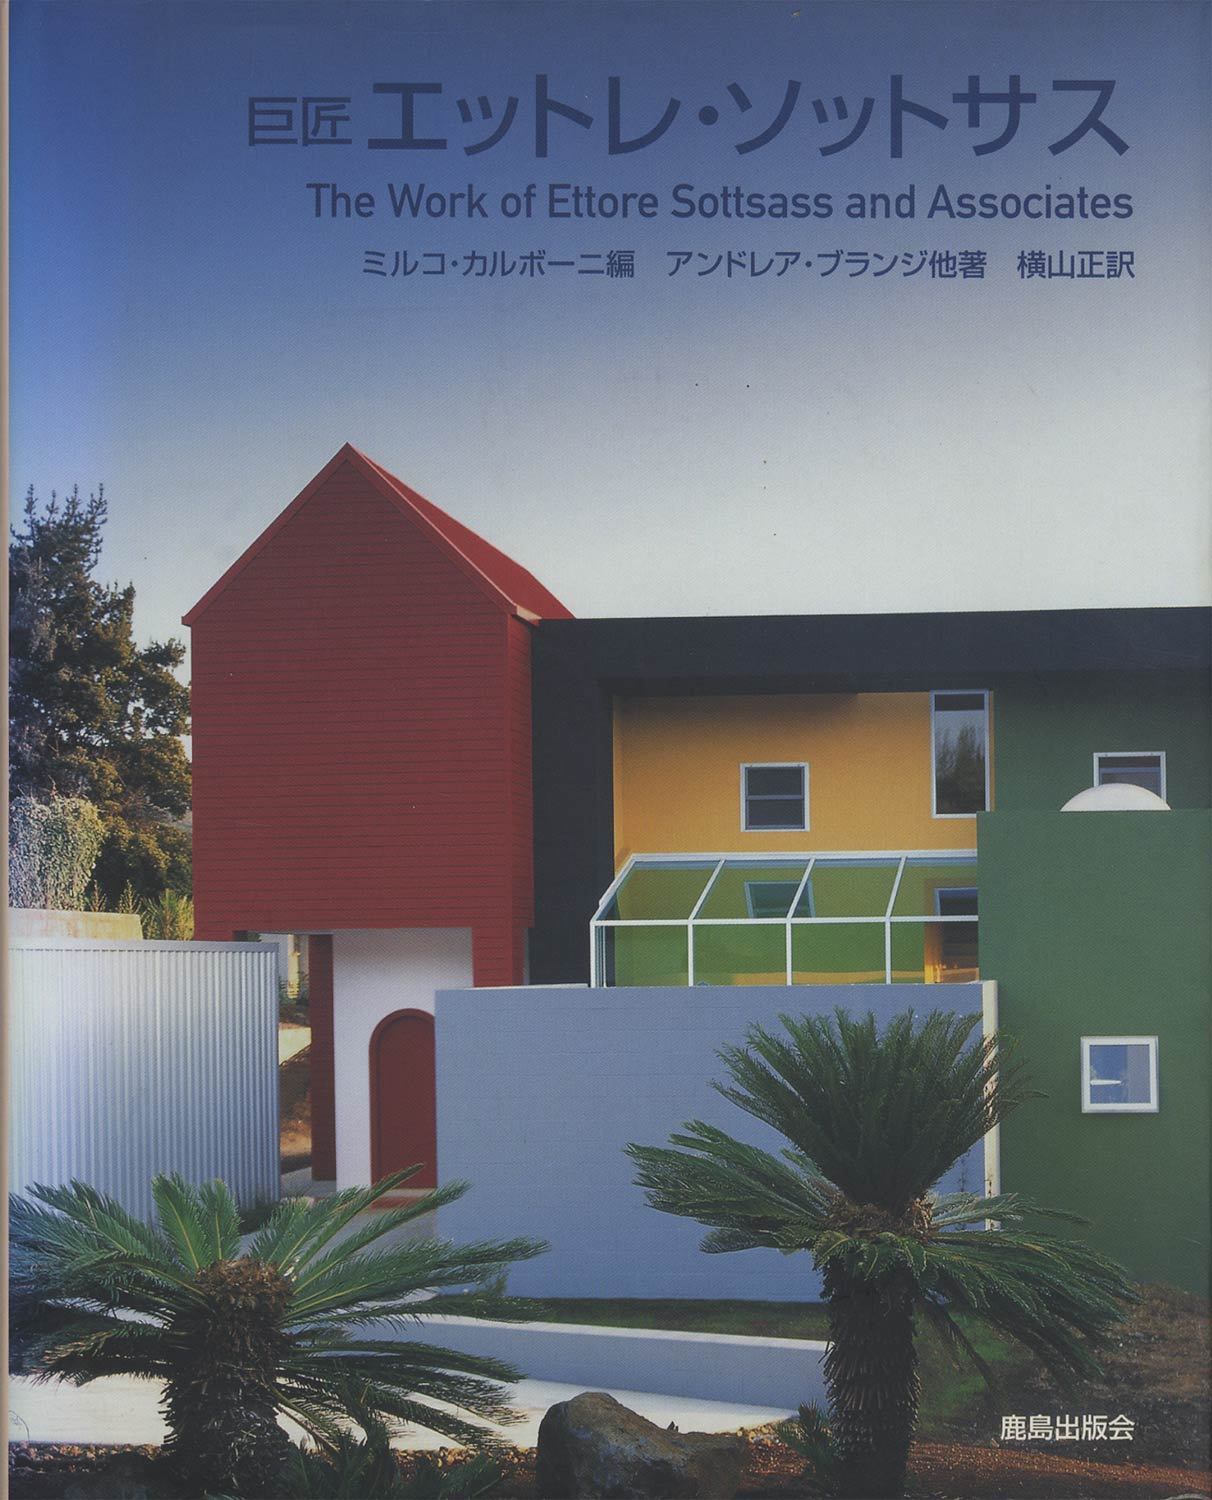 巨匠エットレ・ソットサス The Work of Ettore Sottsass and Associates